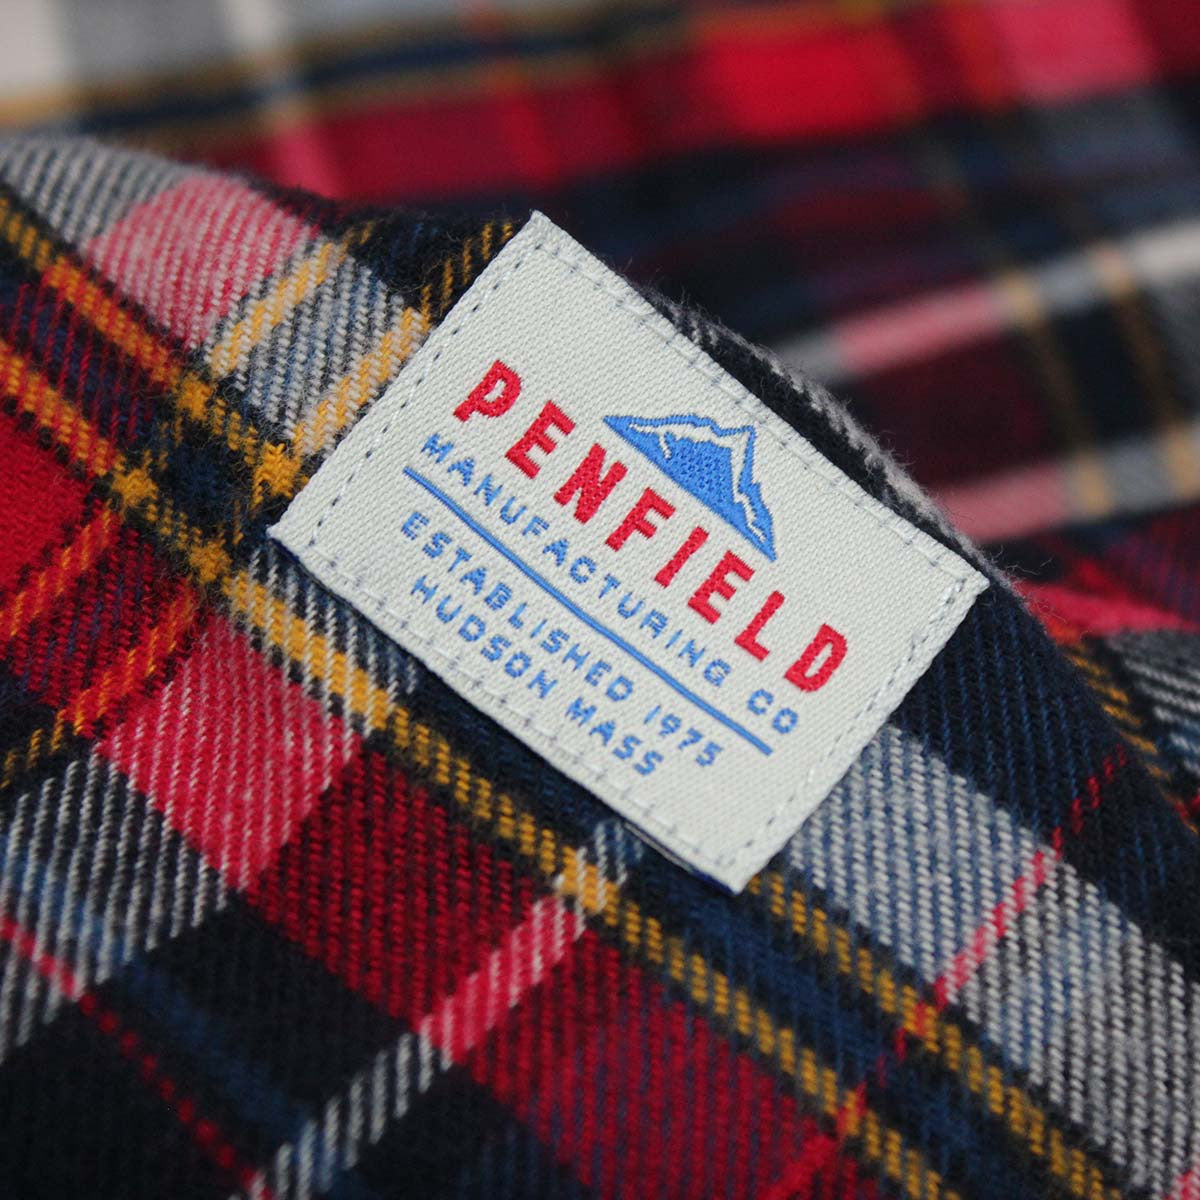 Penfield Barrhead Shirt